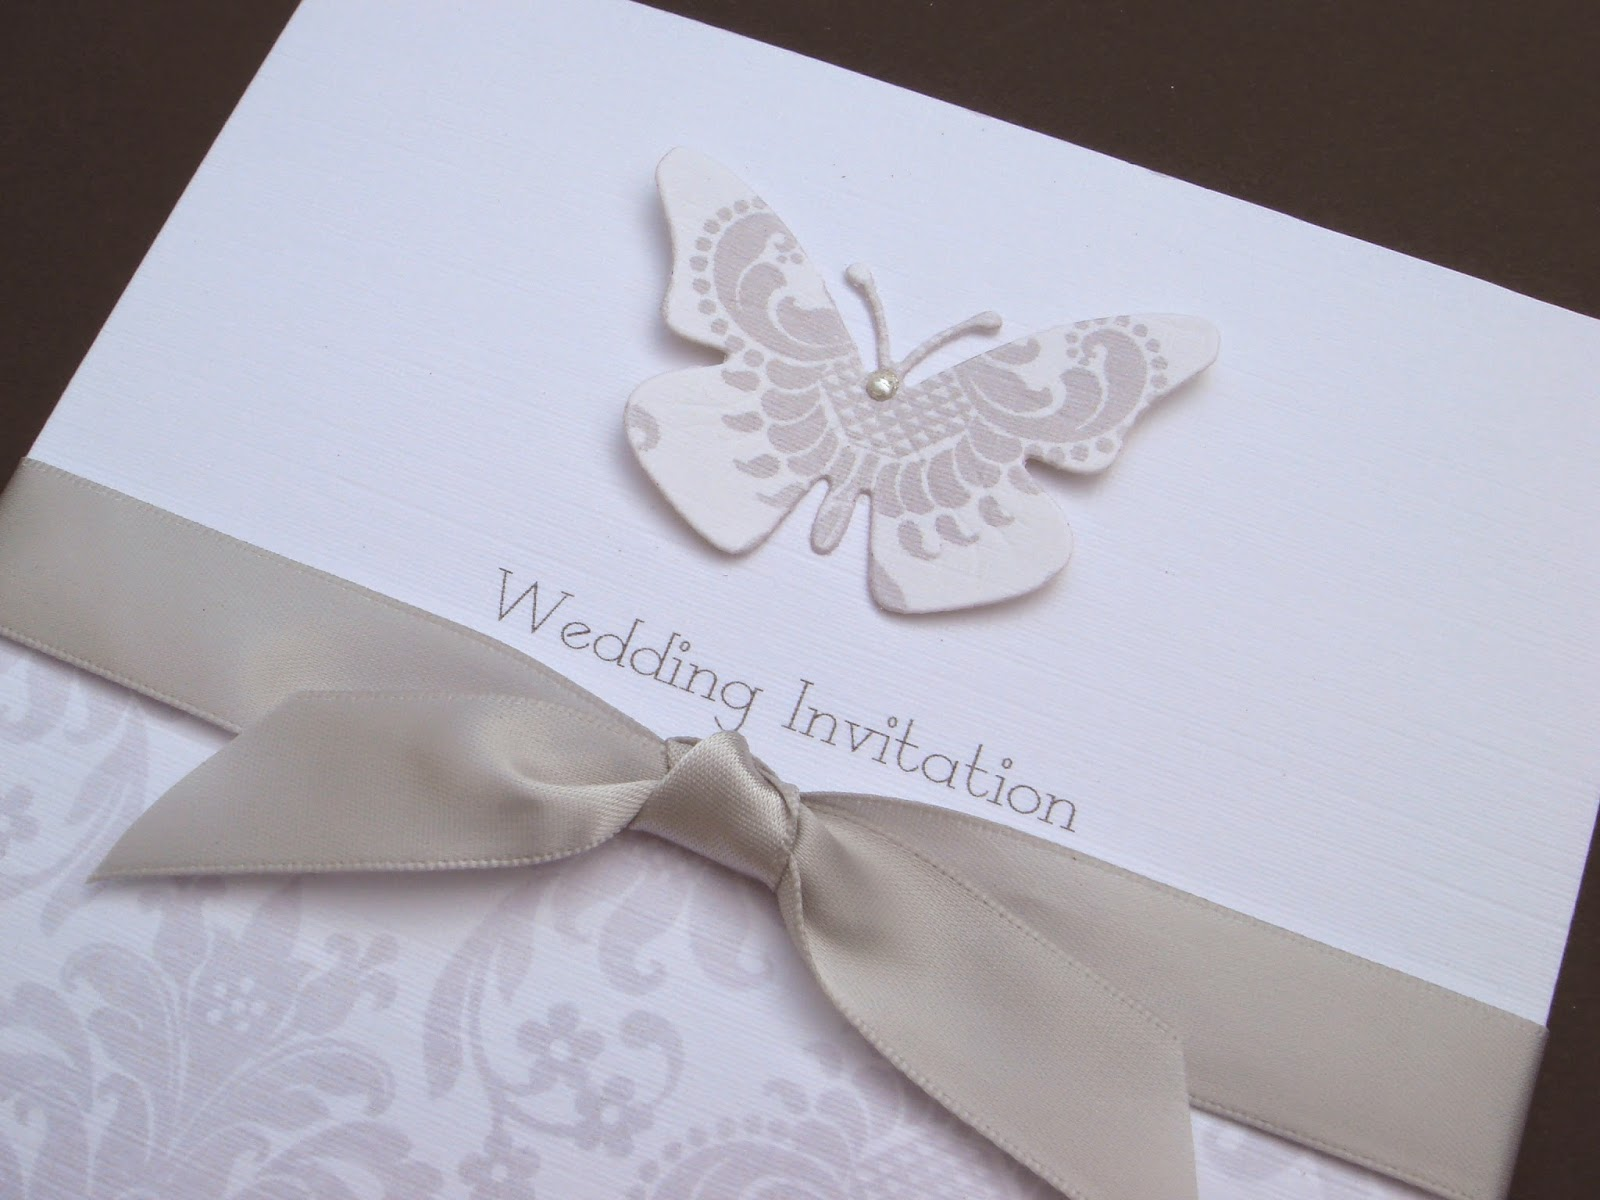 Wedding Invitation Card Handmade: Designs For Occasions: White Linen For A White Wedding